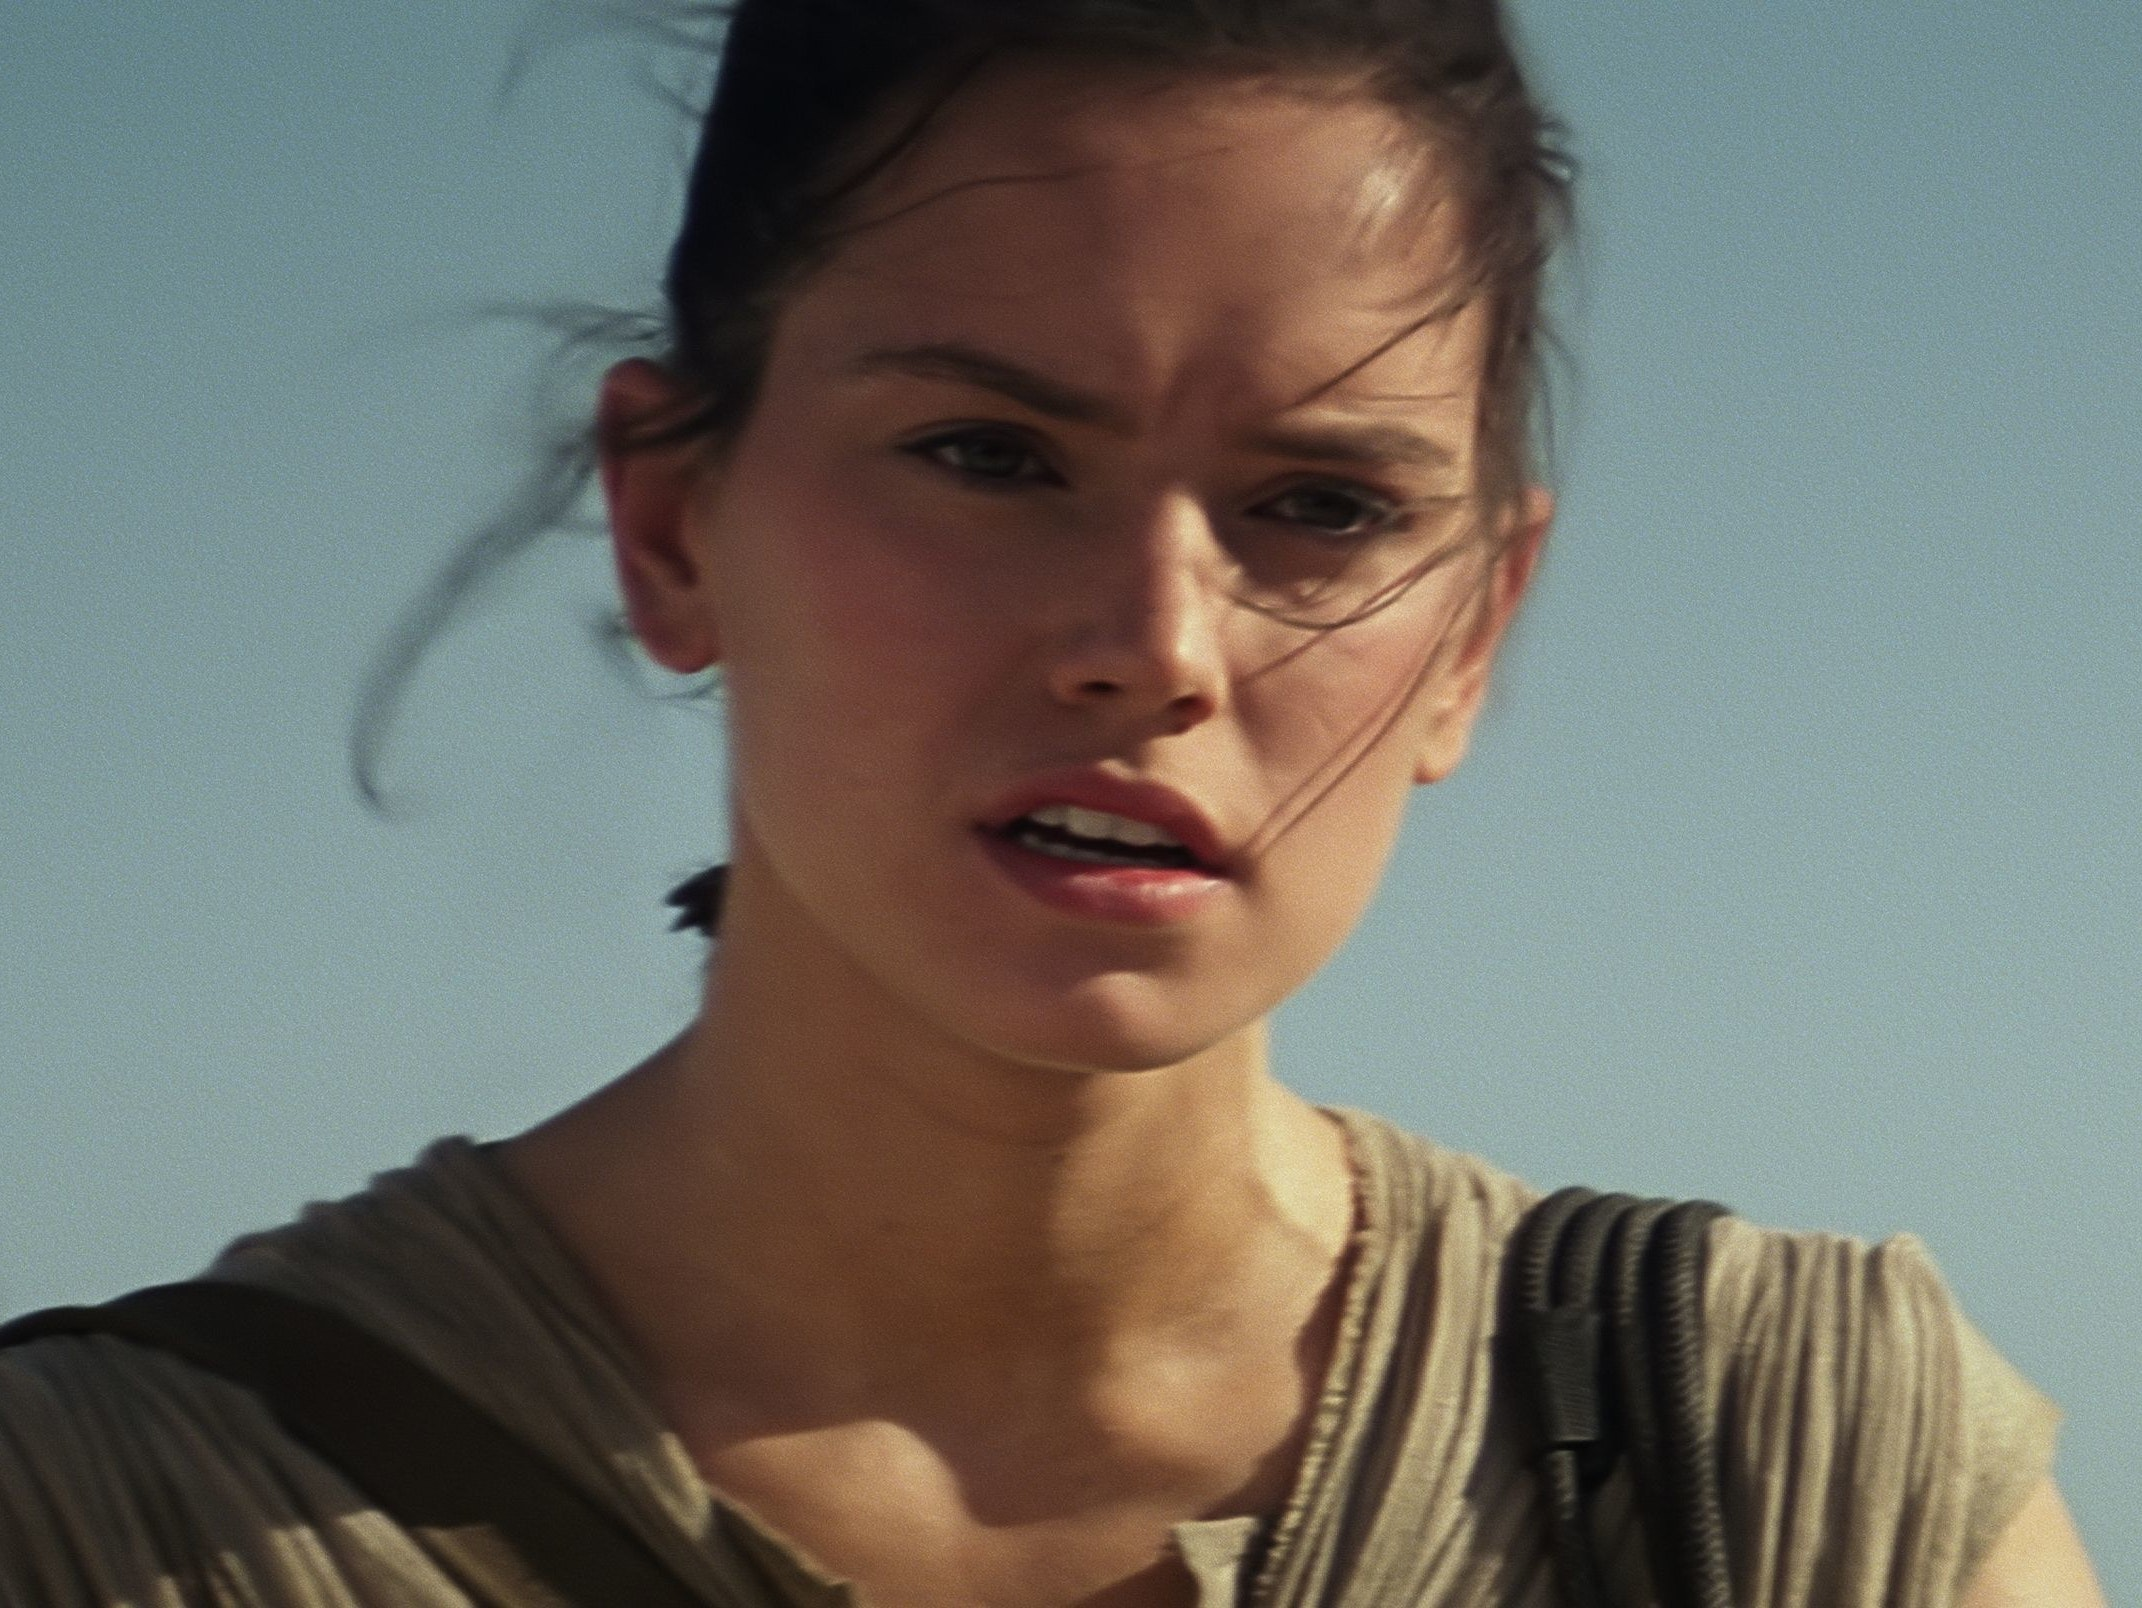 Rey Isn't a Mary Sue Because Her 'Star Wars' Story Makes Sense